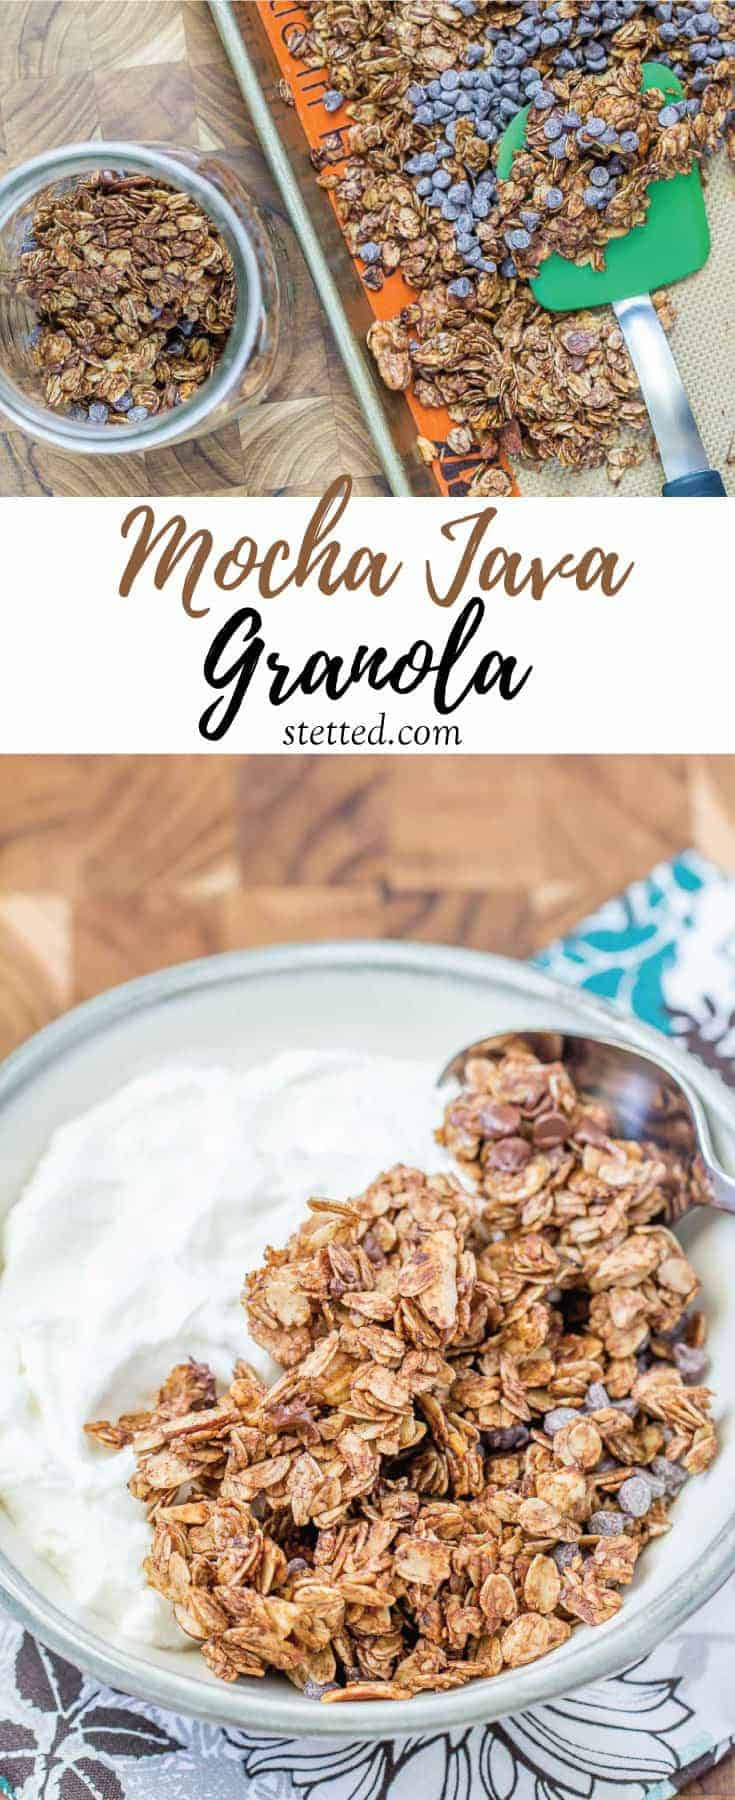 Mocha java granola is chocolaty and nutty, with a hit of coffee. This make-ahead breakfast will make your mornings so much easier.